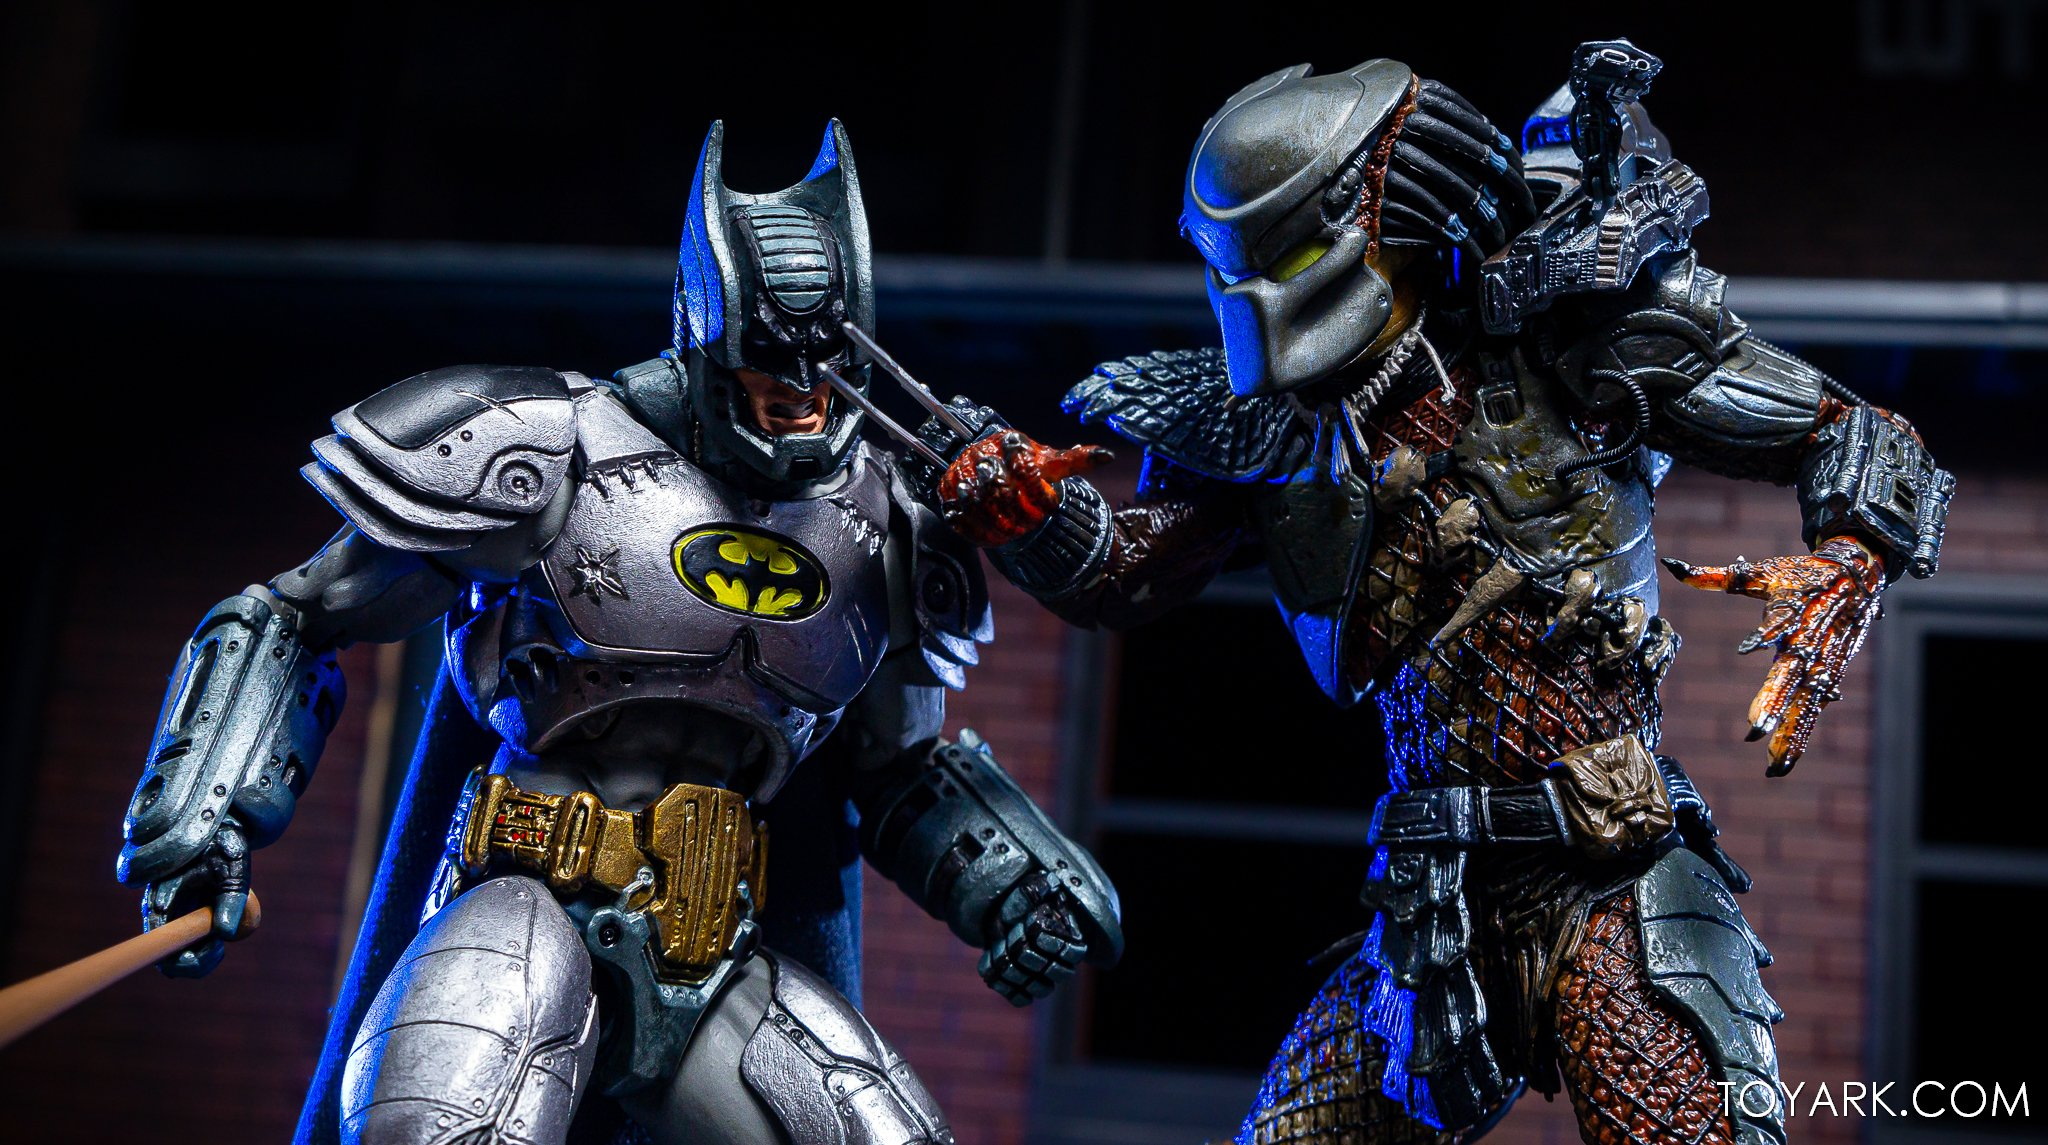 https://news.toyark.com/wp-content/uploads/sites/4/2019/09/Batman-vs-Predator-Set-046.jpg